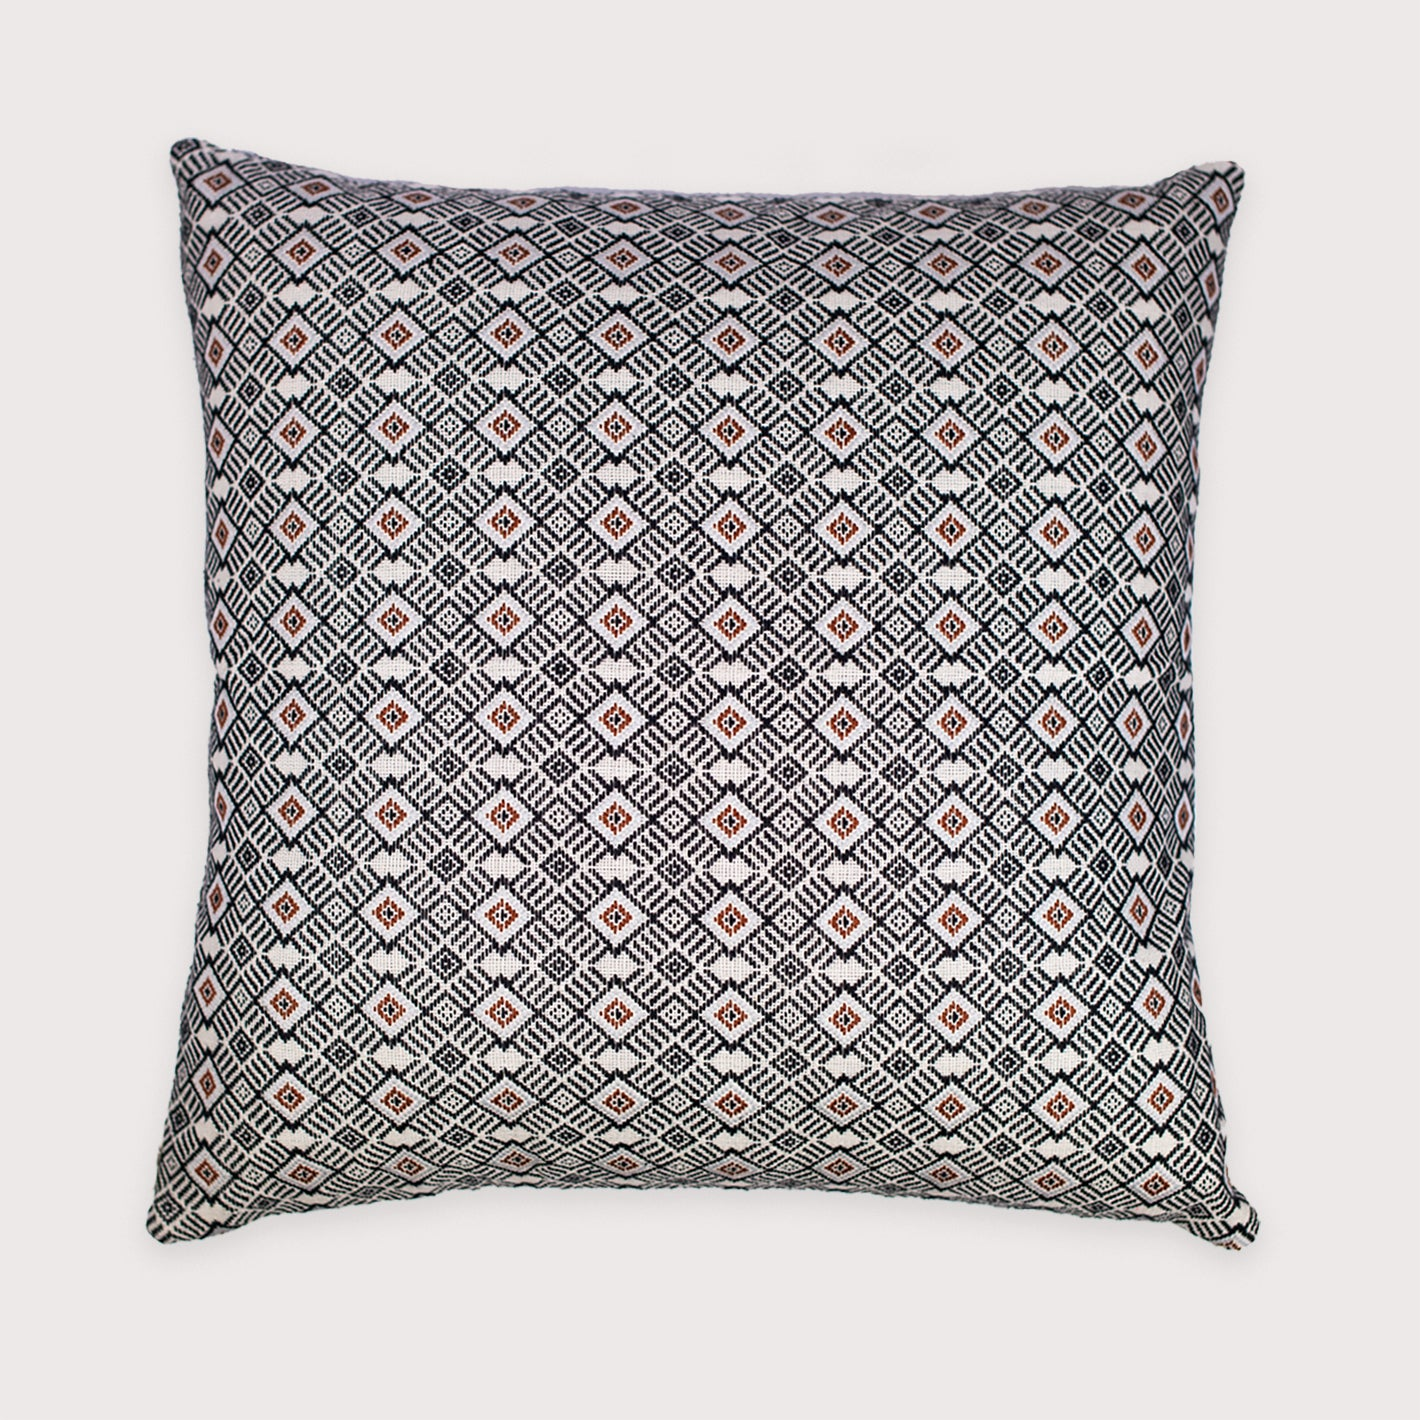 Falseria - brown Pixan Pillow - White Label Project